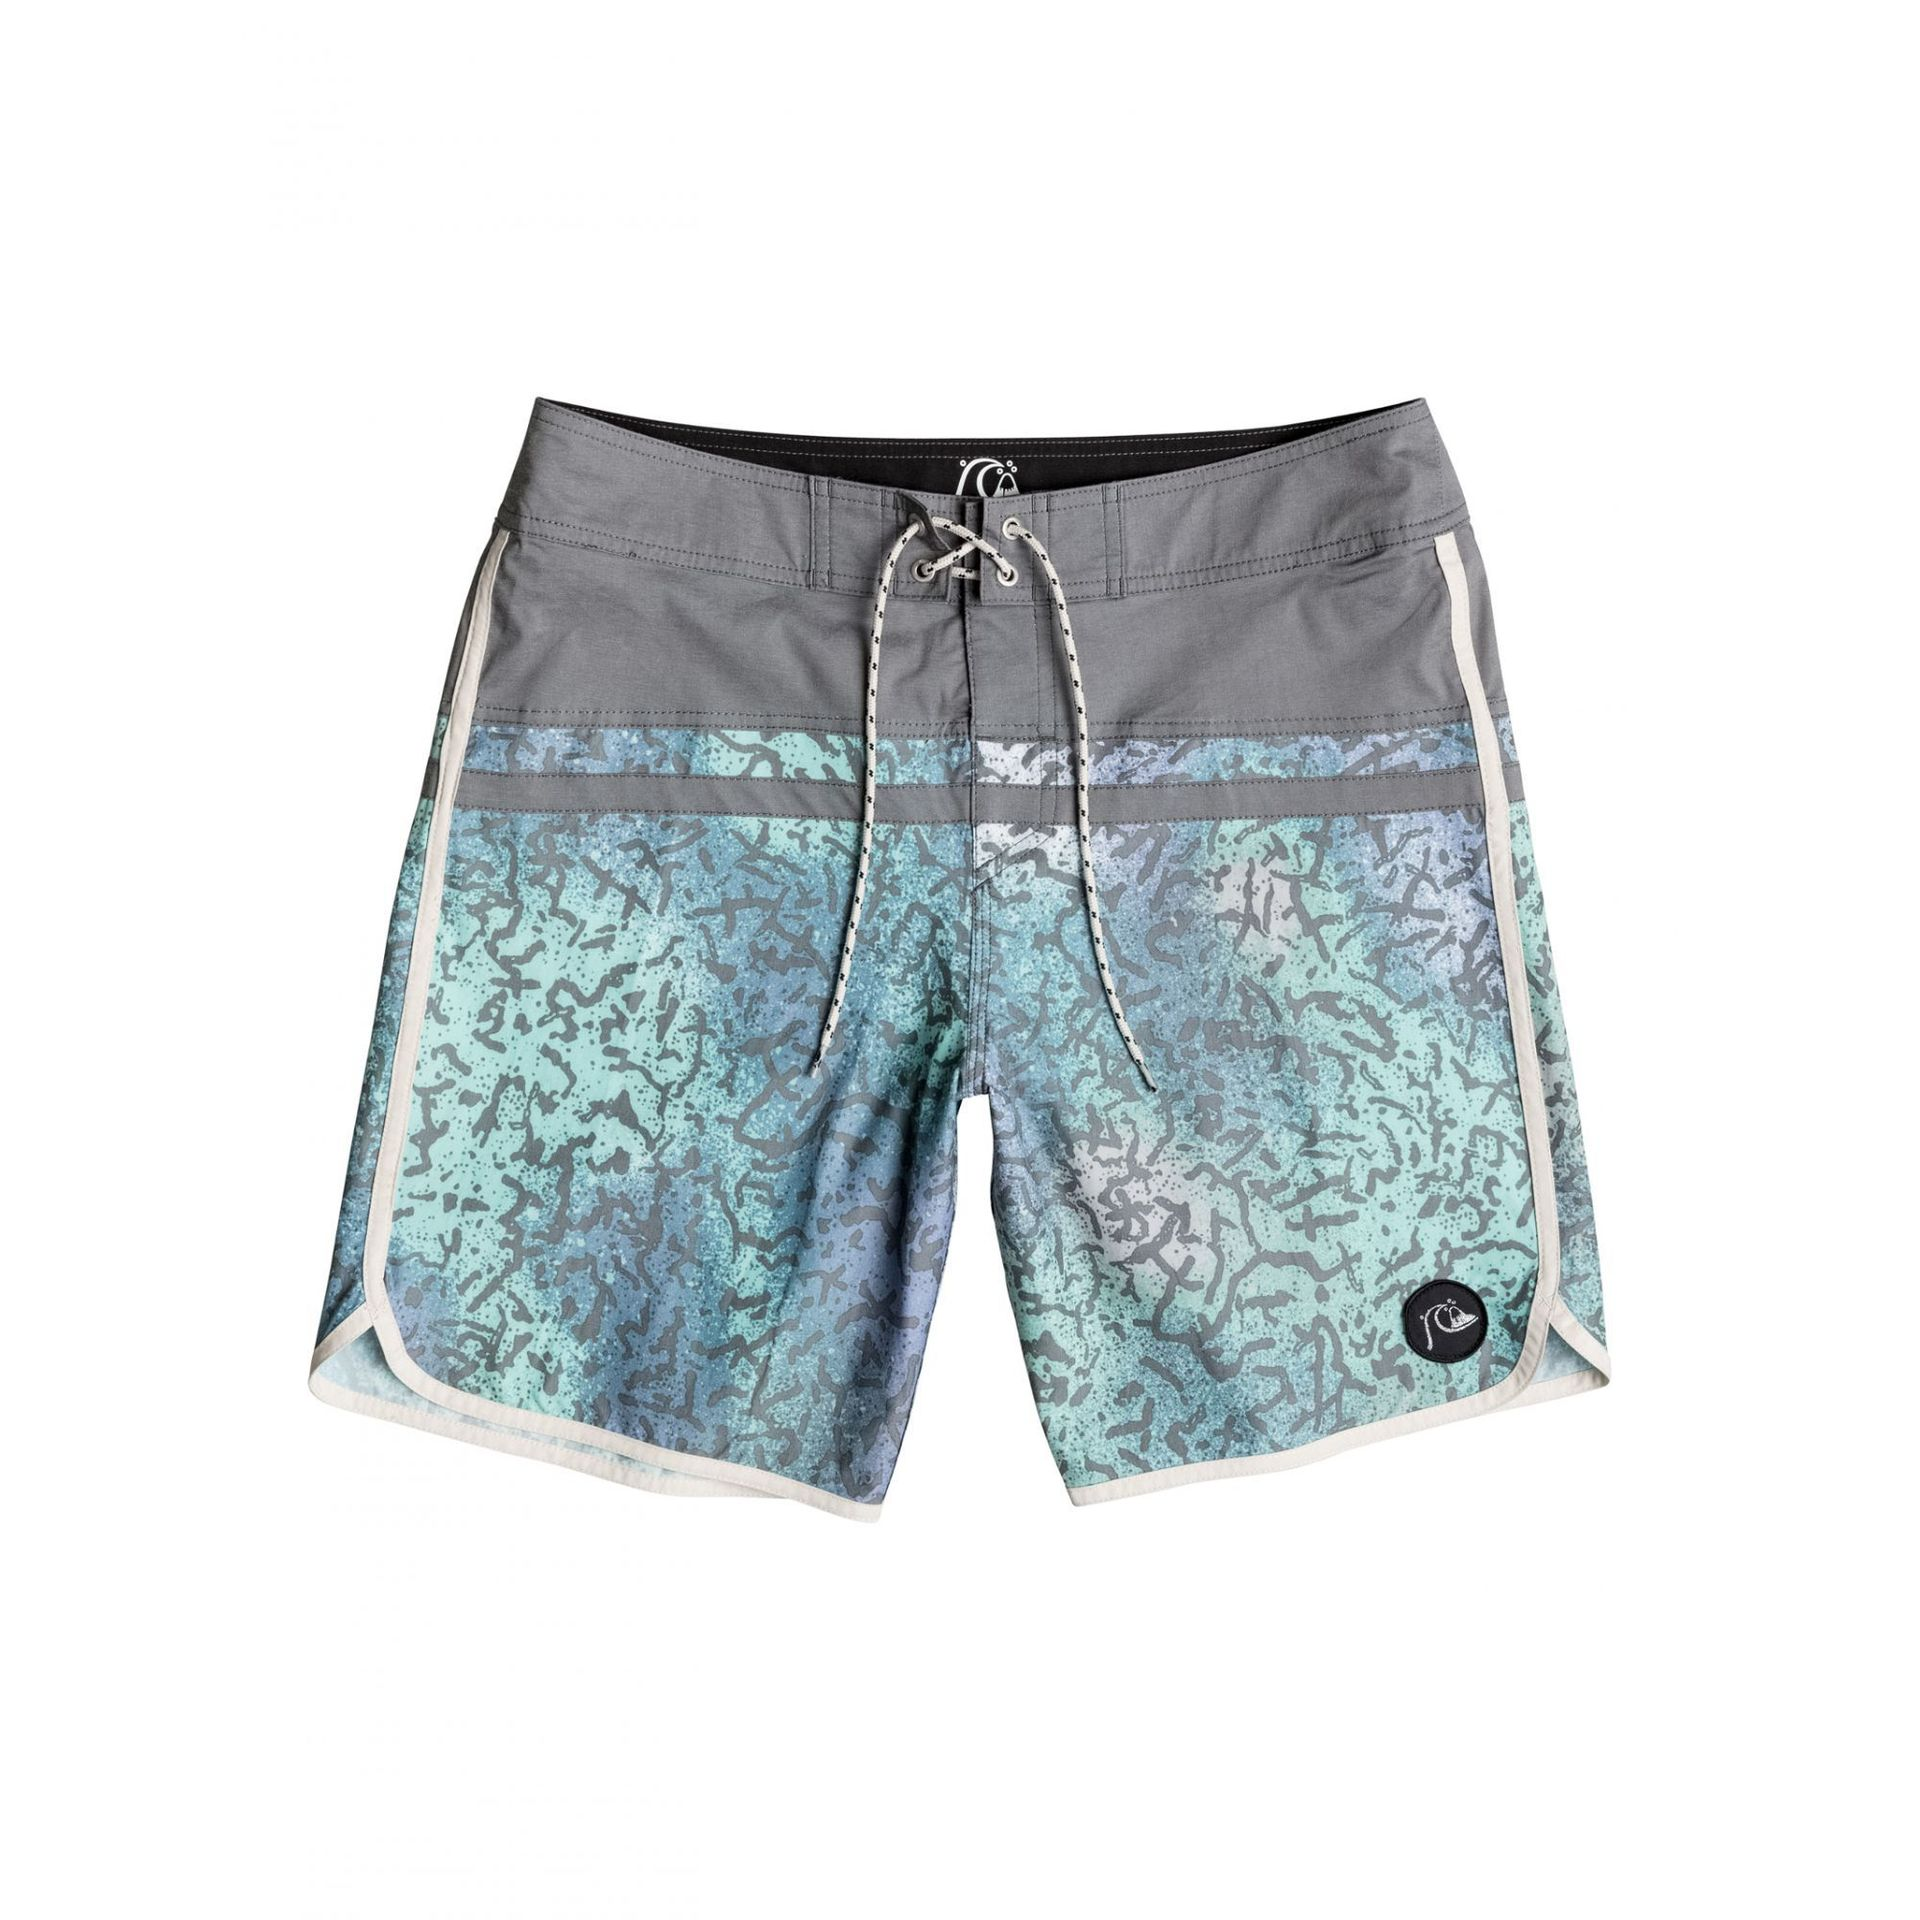 BOARDSHORTY QUIKSILVER STOMP CRACKED SCALLOP 18 KPV0